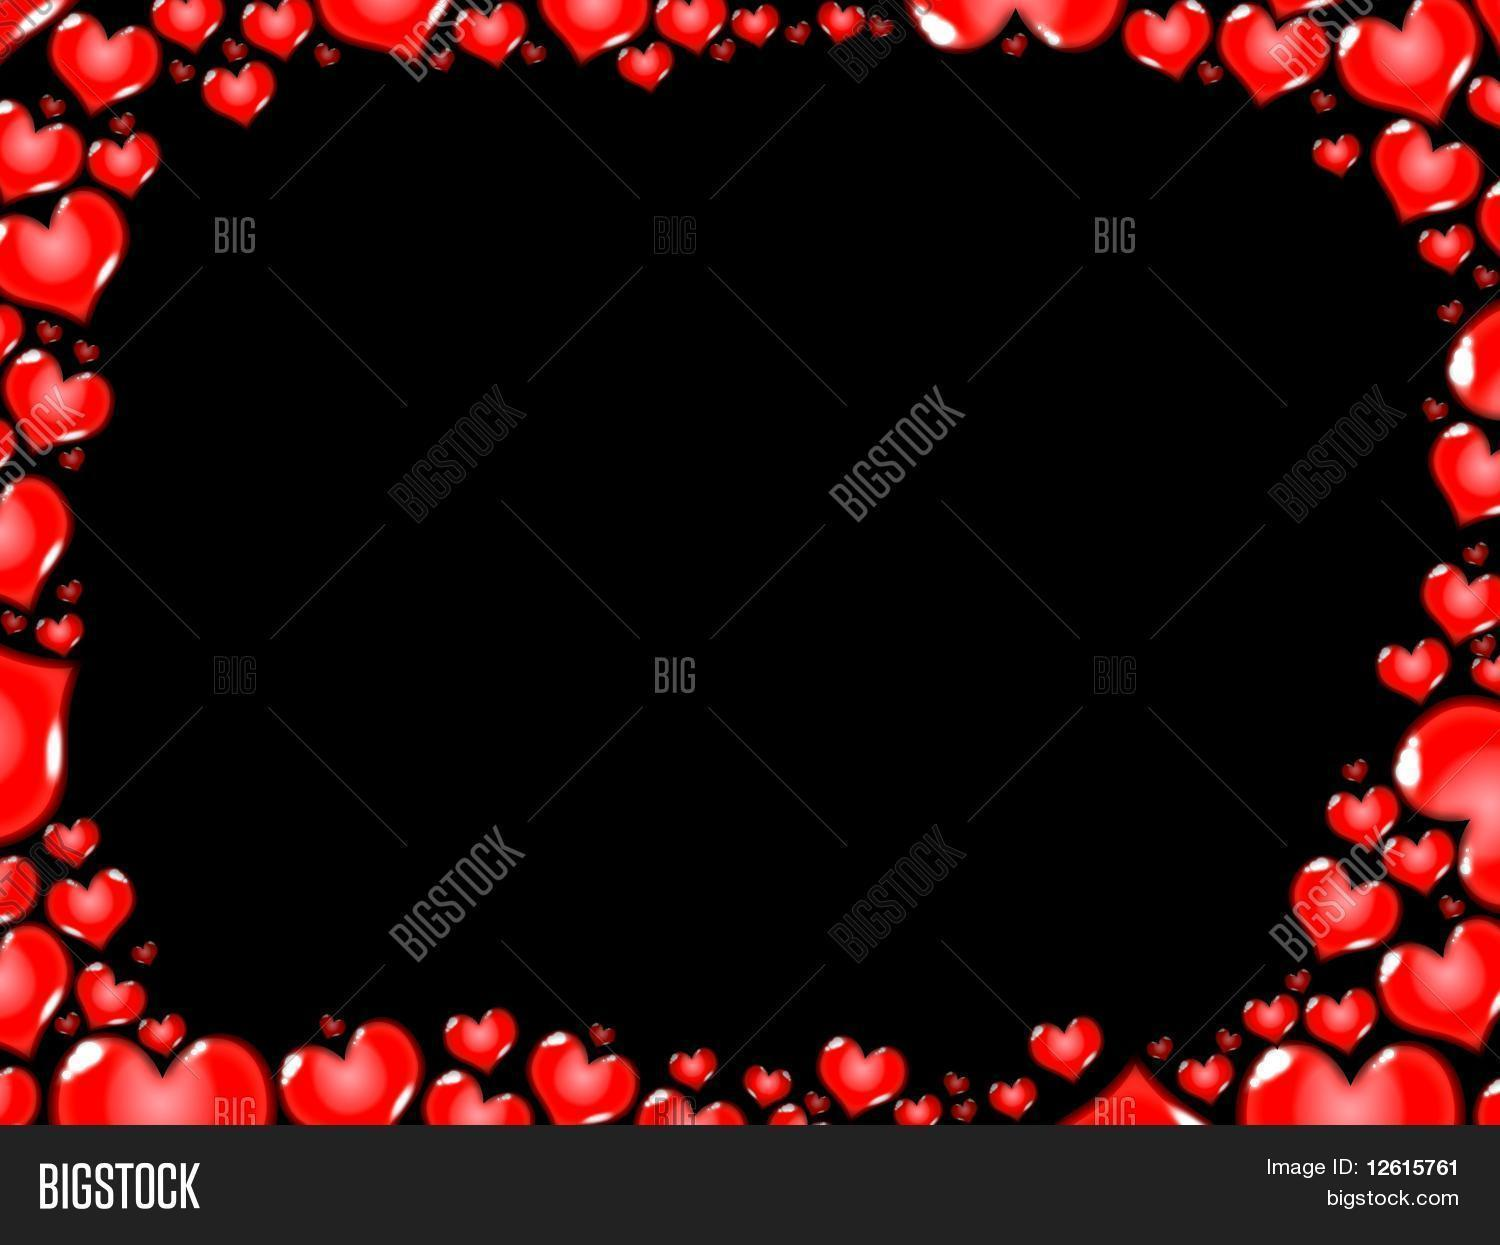 Black Border PNG Images  Vectors and PSD Files  Free